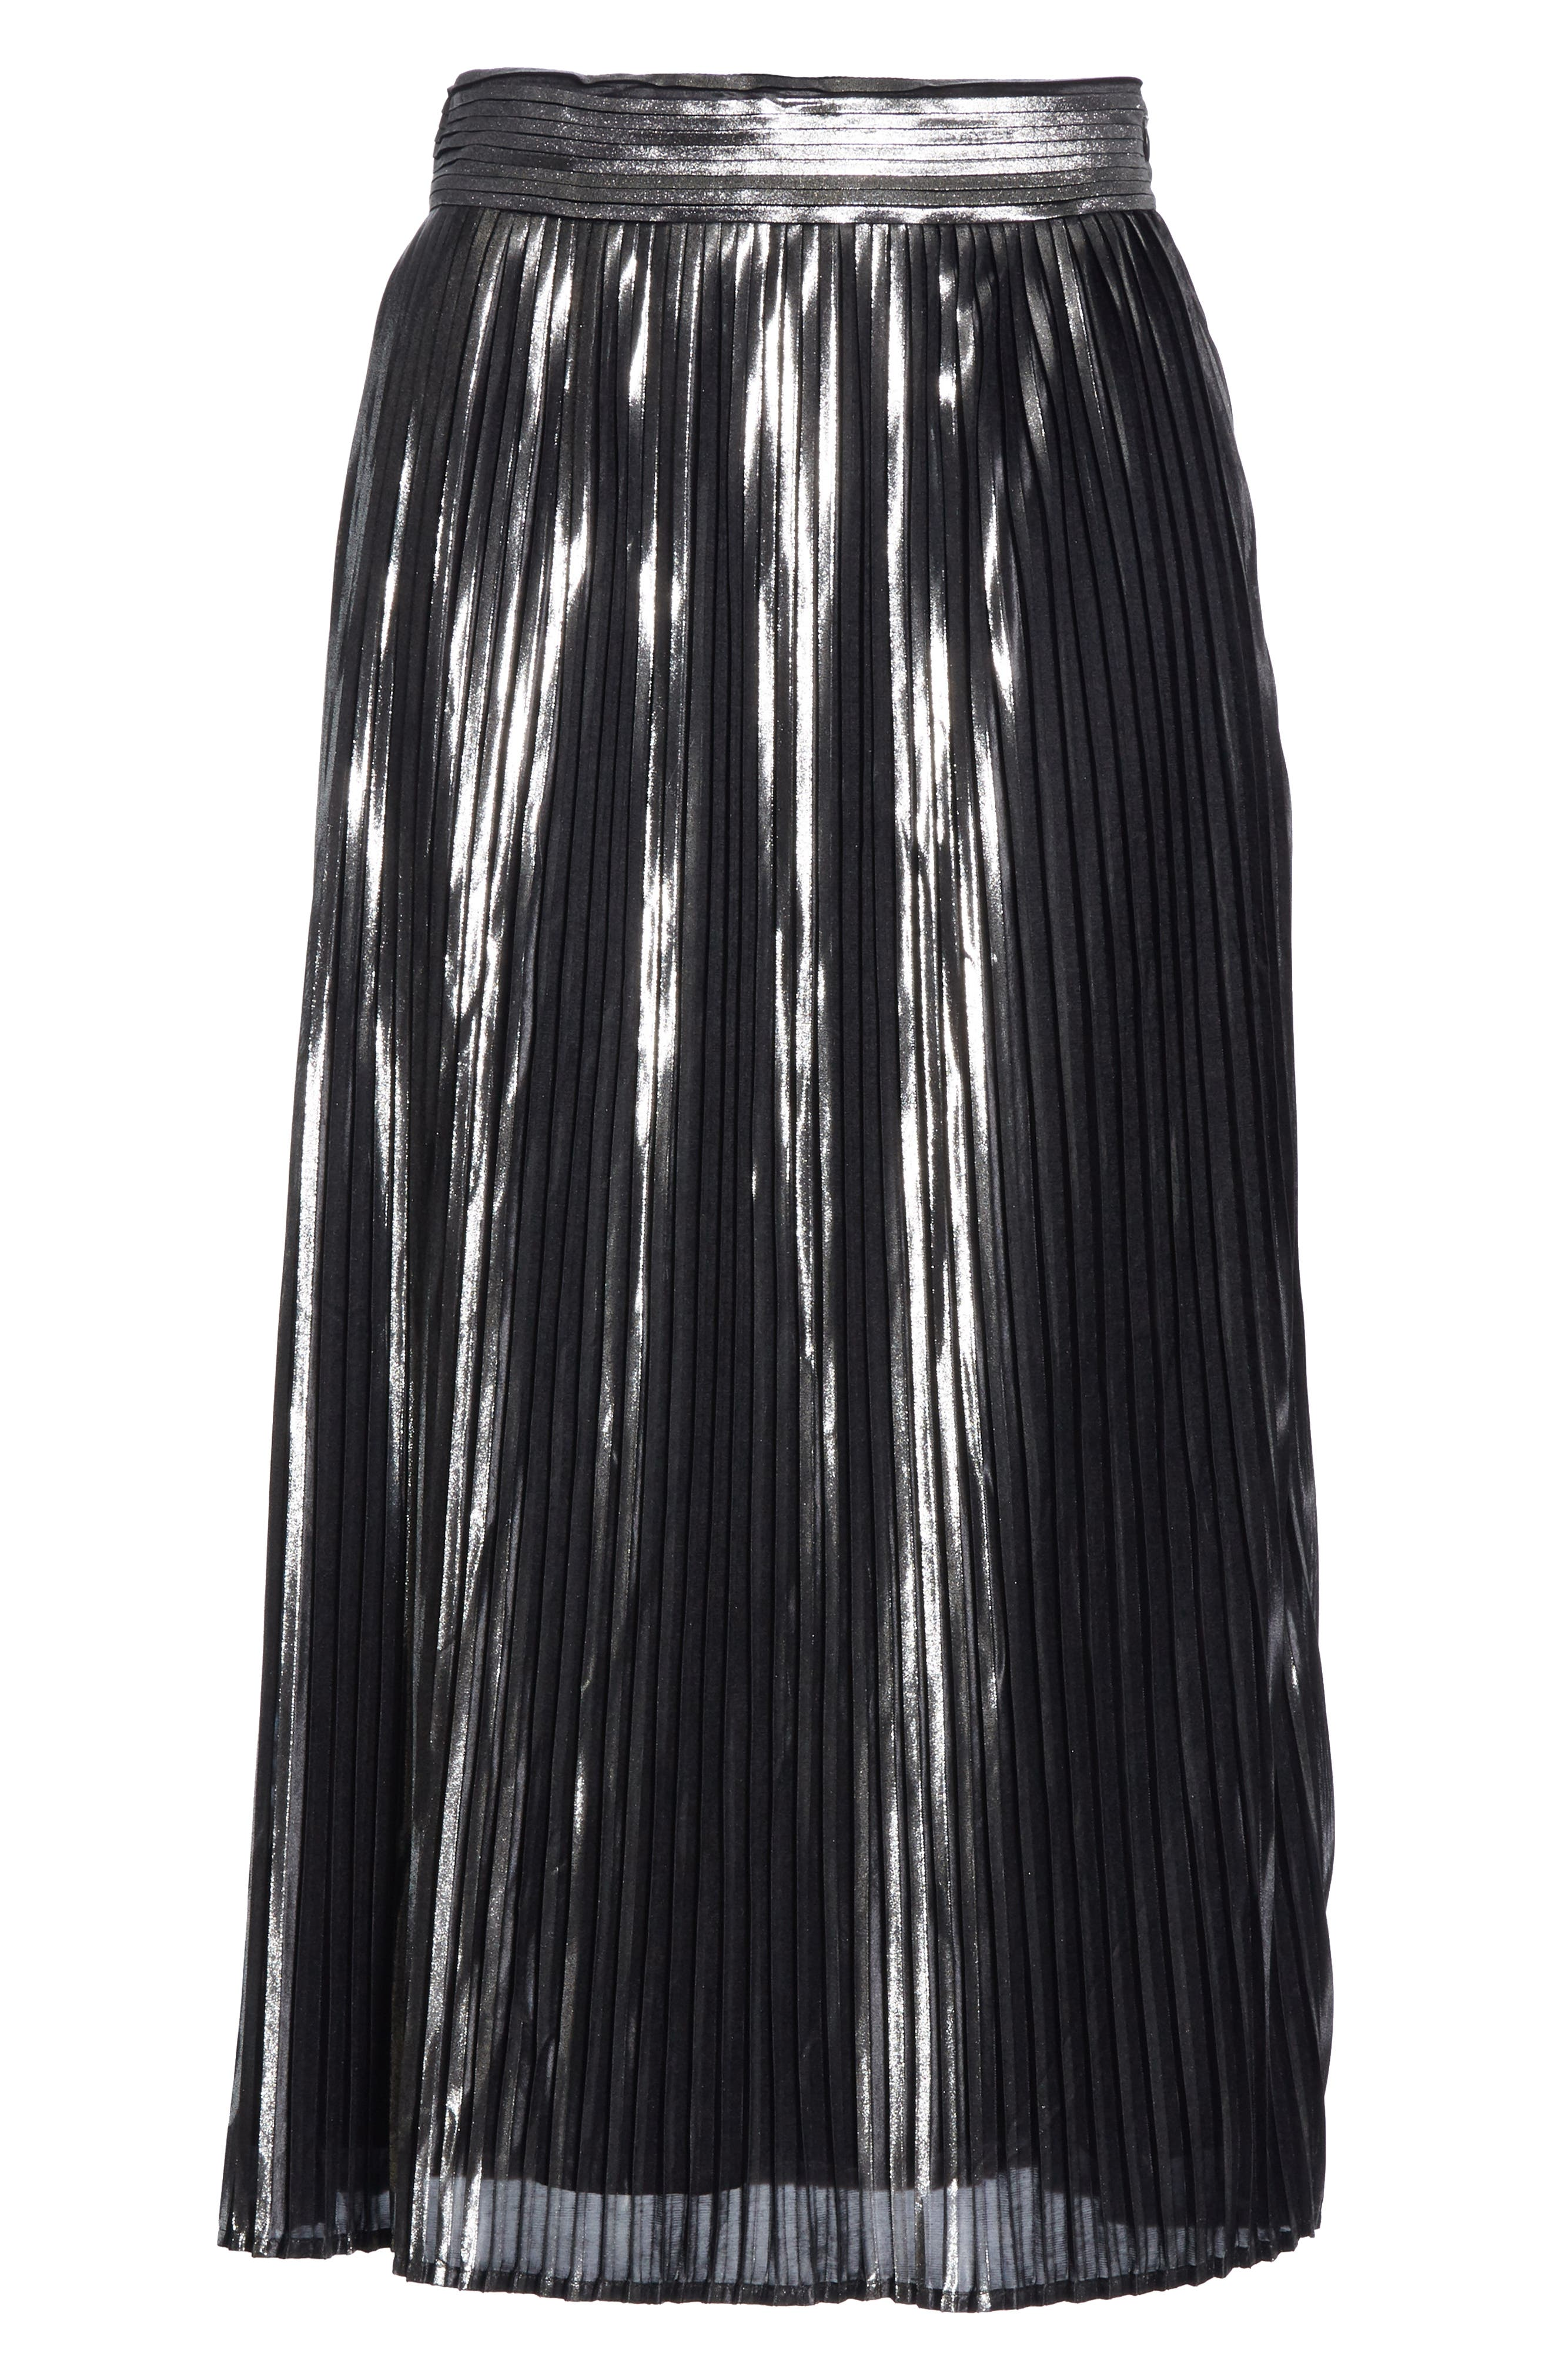 Palace Micropleat Metallic Skirt,                             Alternate thumbnail 6, color,                             ARGENT